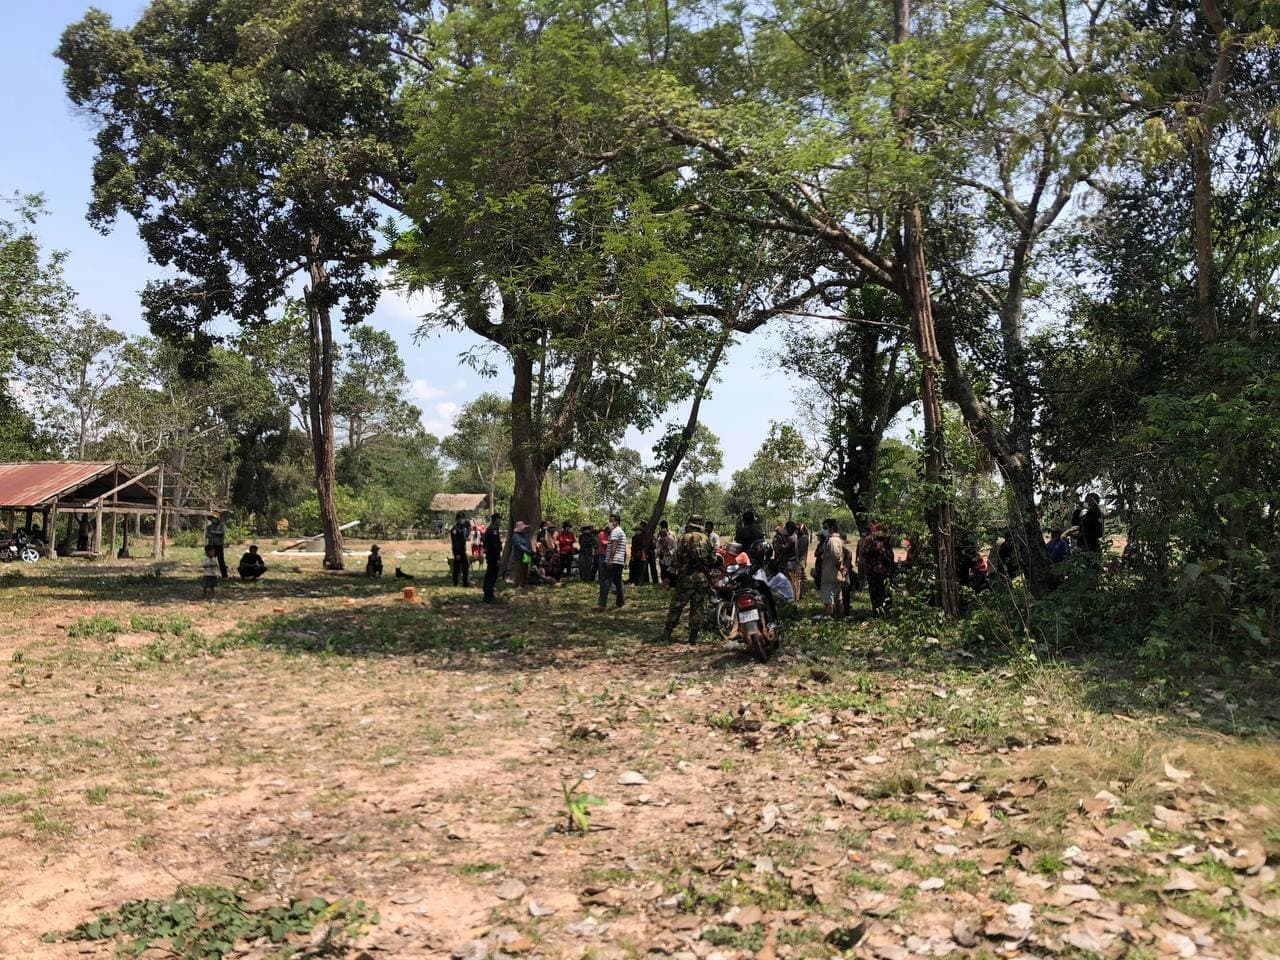 A recovered photo taken by VOD reporter Khut Sokun during a land protest on May 11. Sokun says authorities confronted him on the scene and demanded he delete his images of the protest.